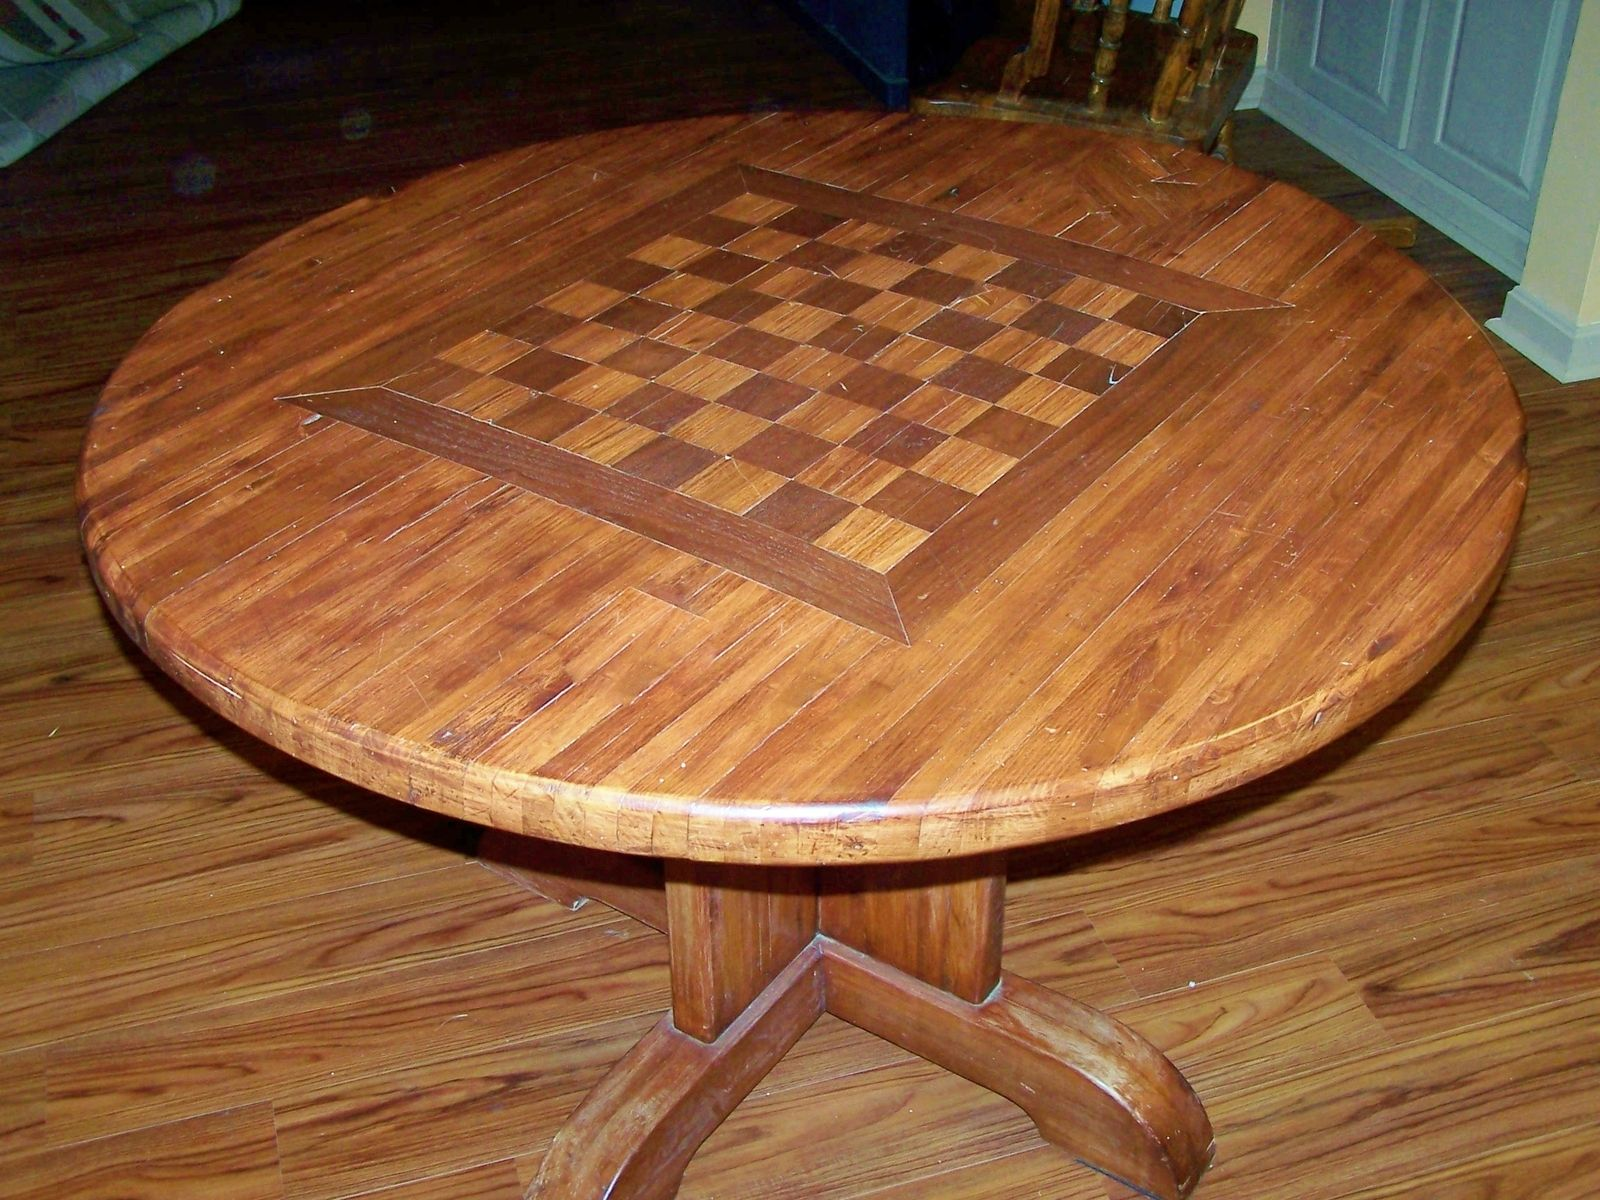 Handmade Butcher Block Table With Chess Board by Classic Woodworks